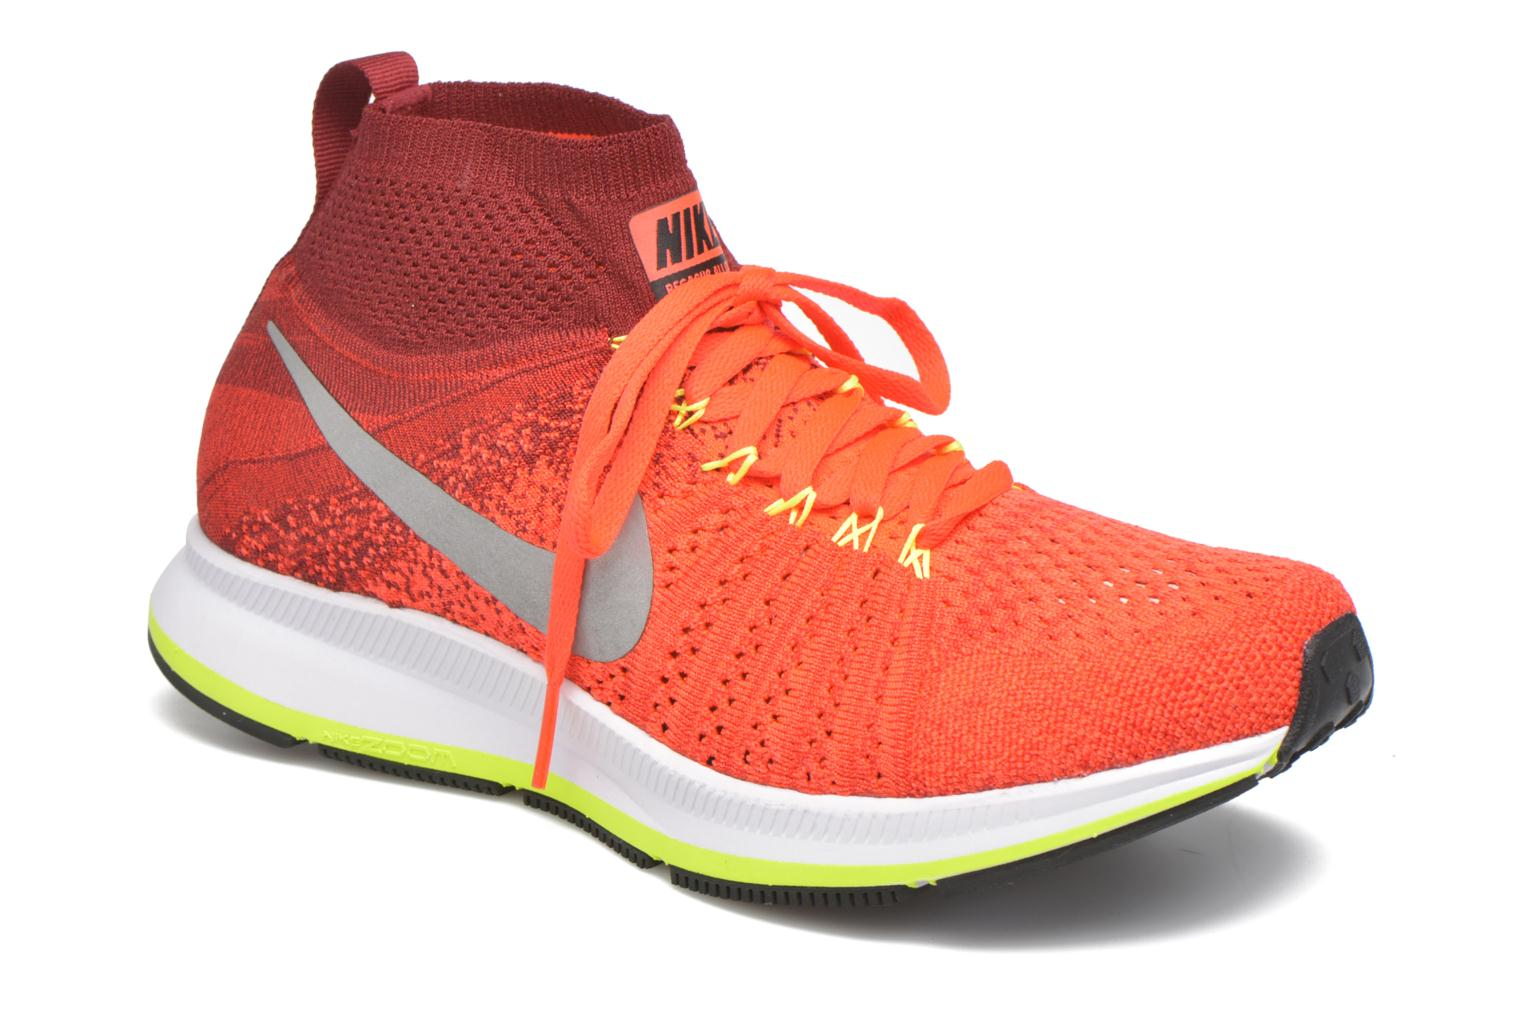 Zm Pegasus All Out Flyknit Gs Bright Crimson White-Tm Rd-Vlt